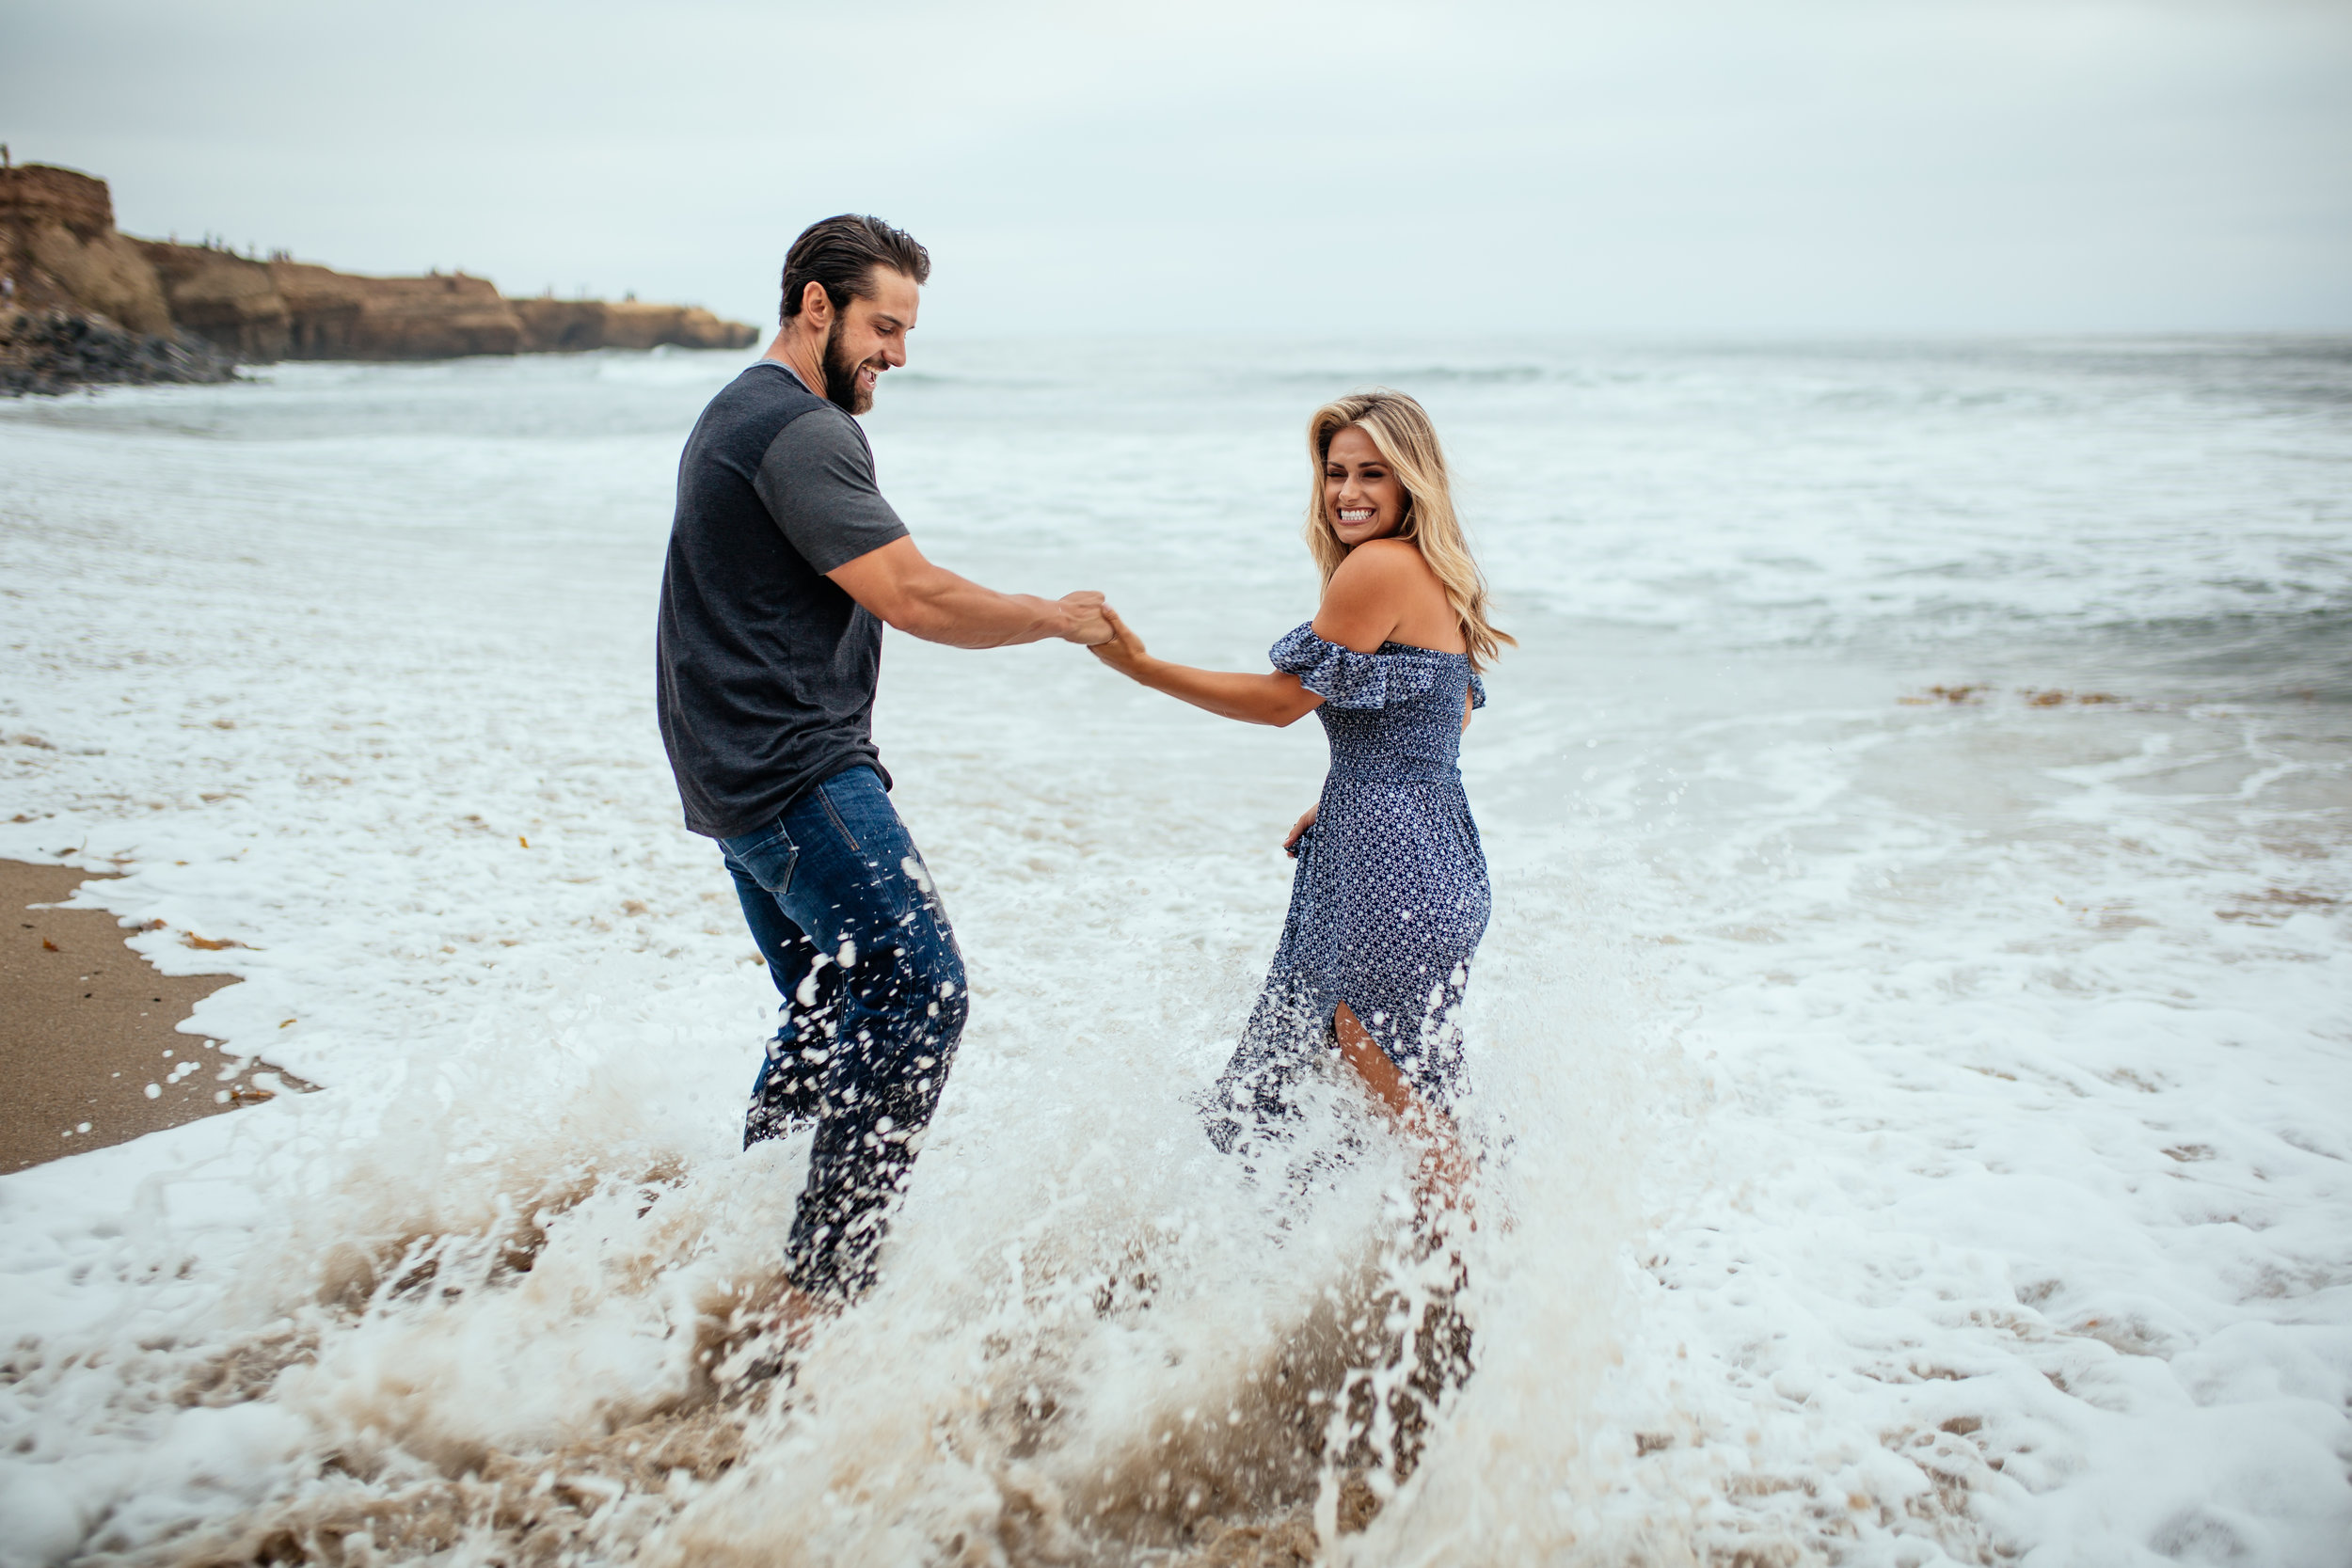 beach-engagement-shoot1.jpg